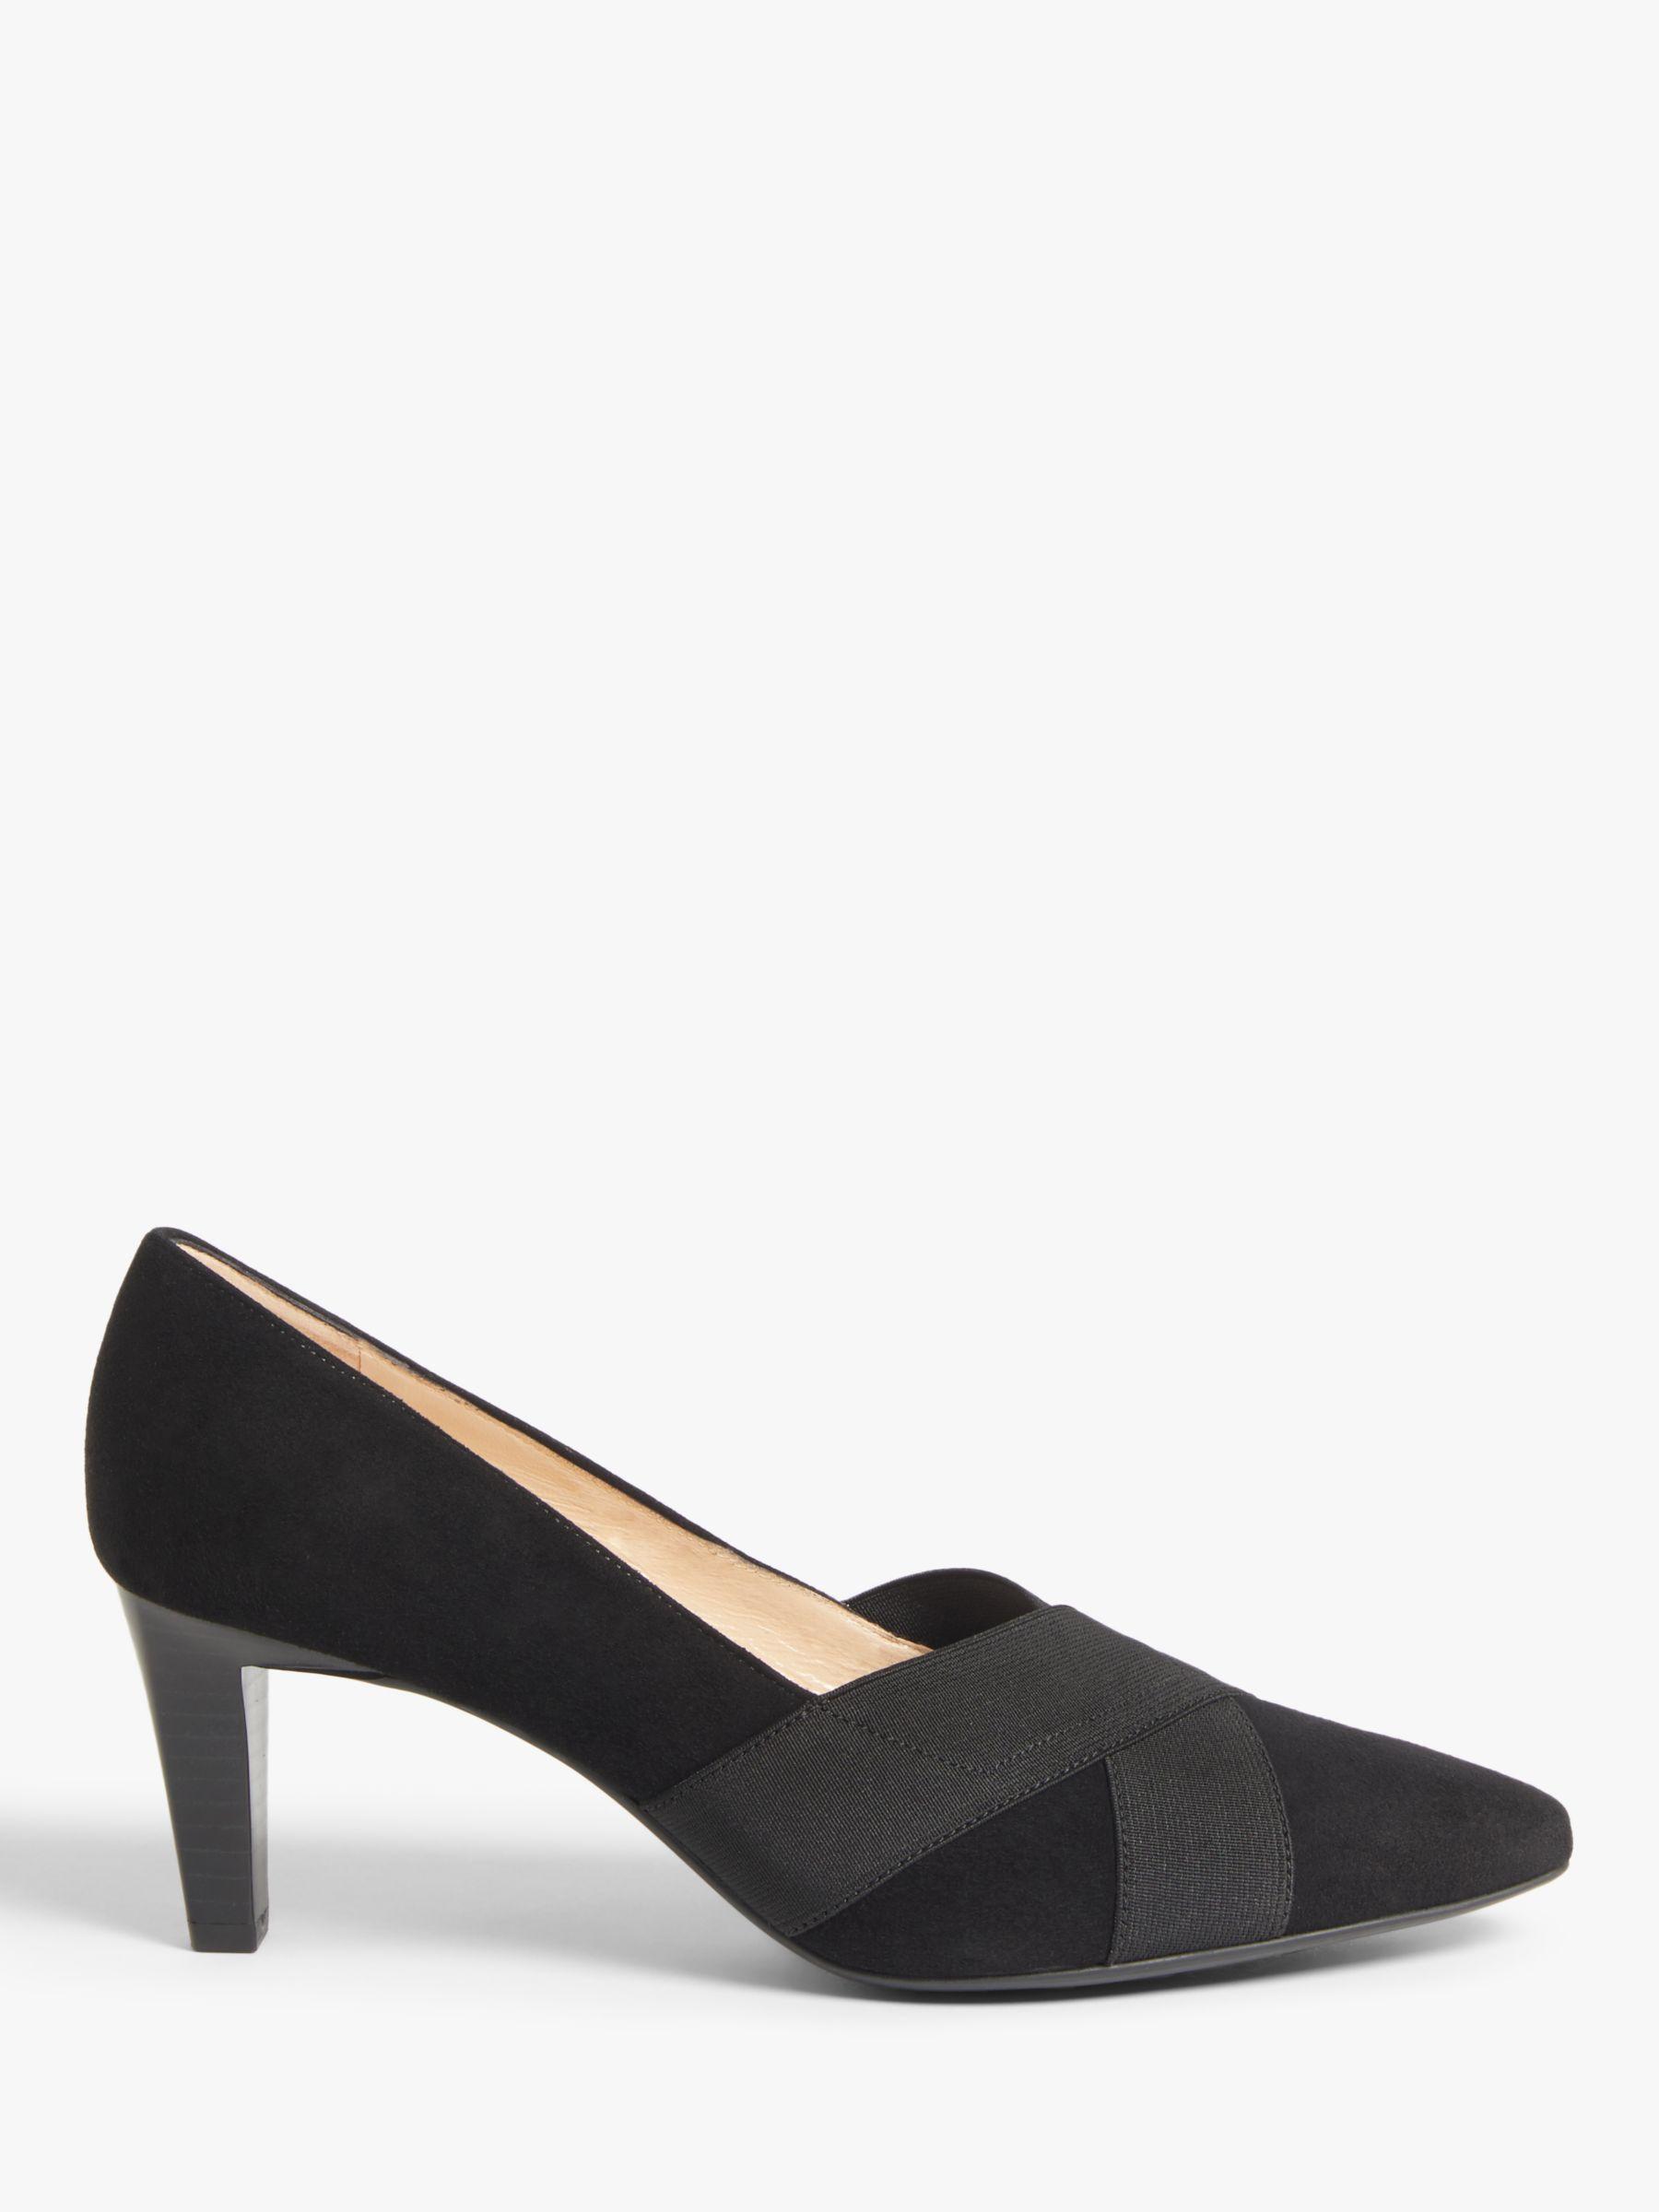 Peter Kaiser Peter Kaiser Malana Cross Strap Court Shoes, Black Suede